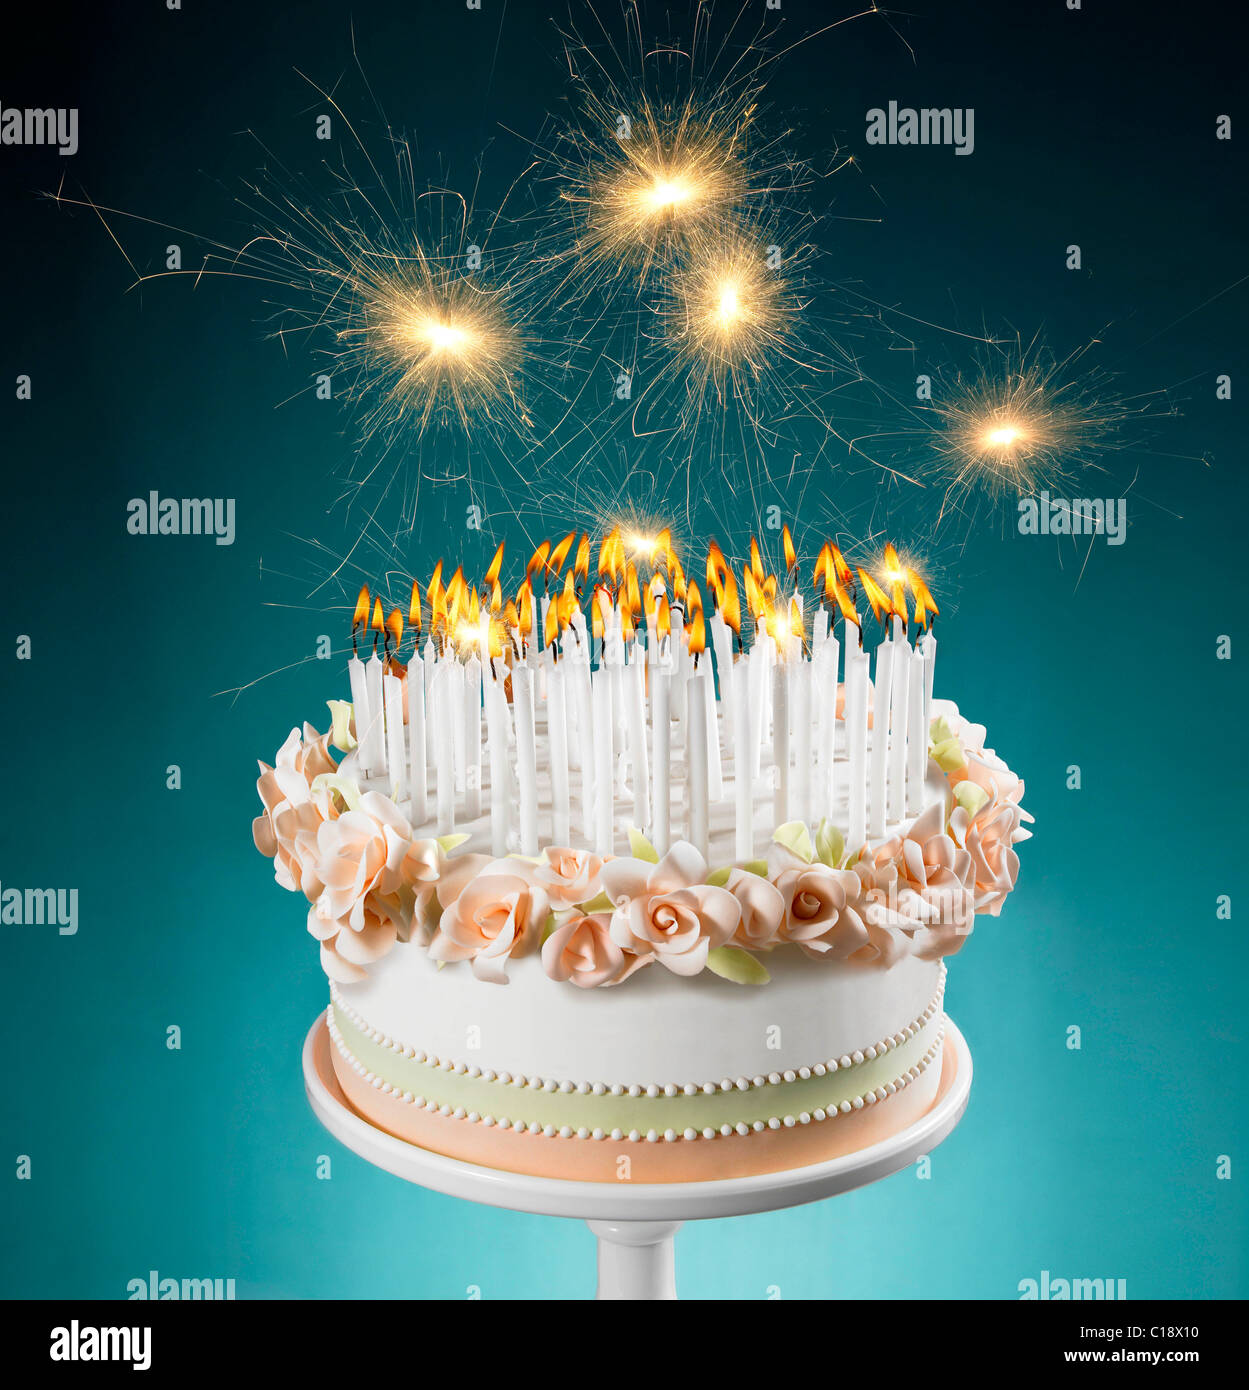 Birthday Cake With Lots Of Burning Candles